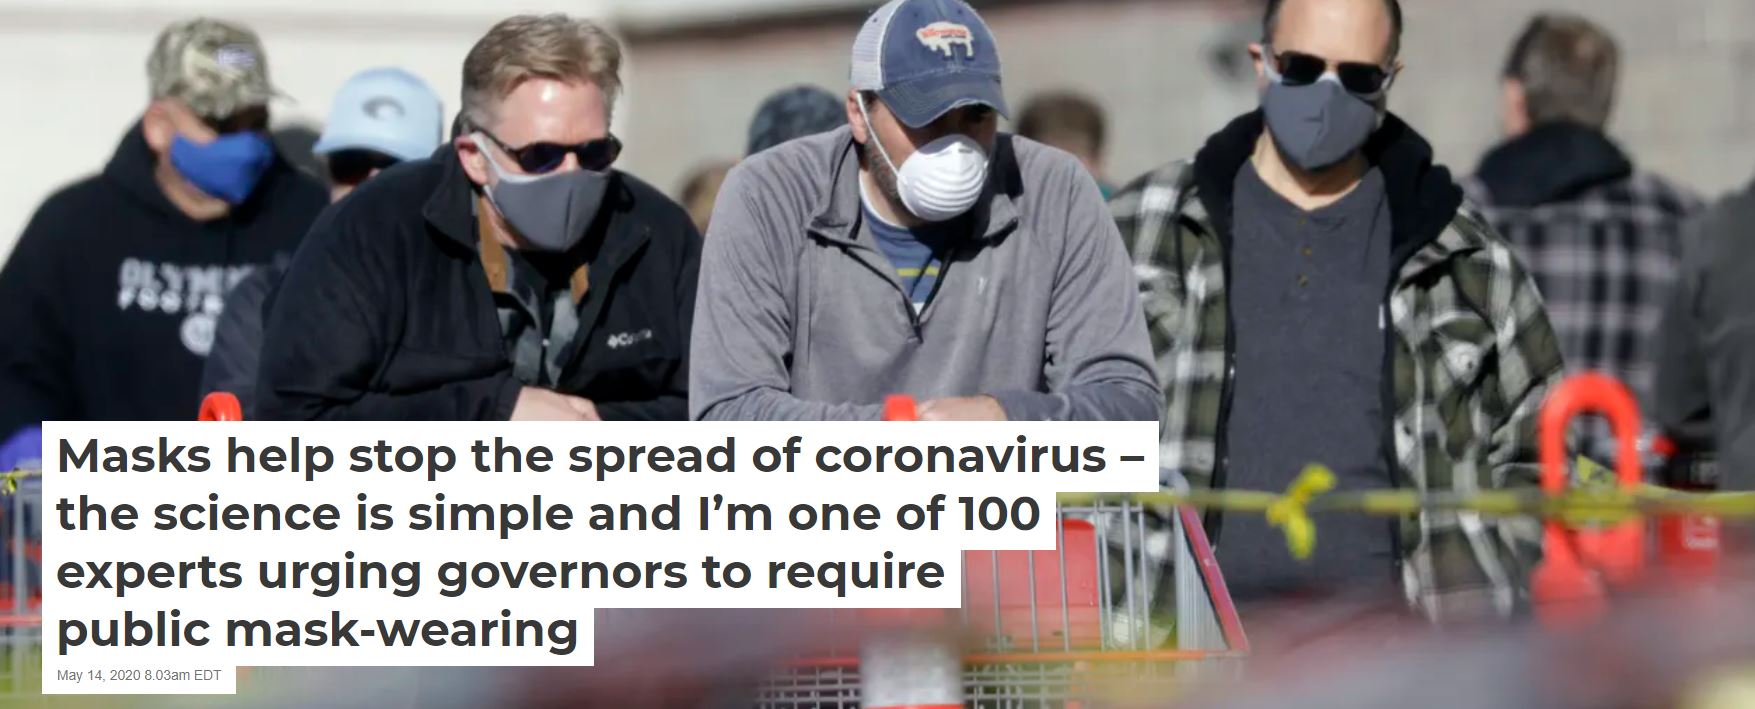 2020 05 17 13 15 30 Masks help stop the spread of coronavirus – the science is simple and Im one of The Face Mask: A Powerful Symbol of COVID Oppression